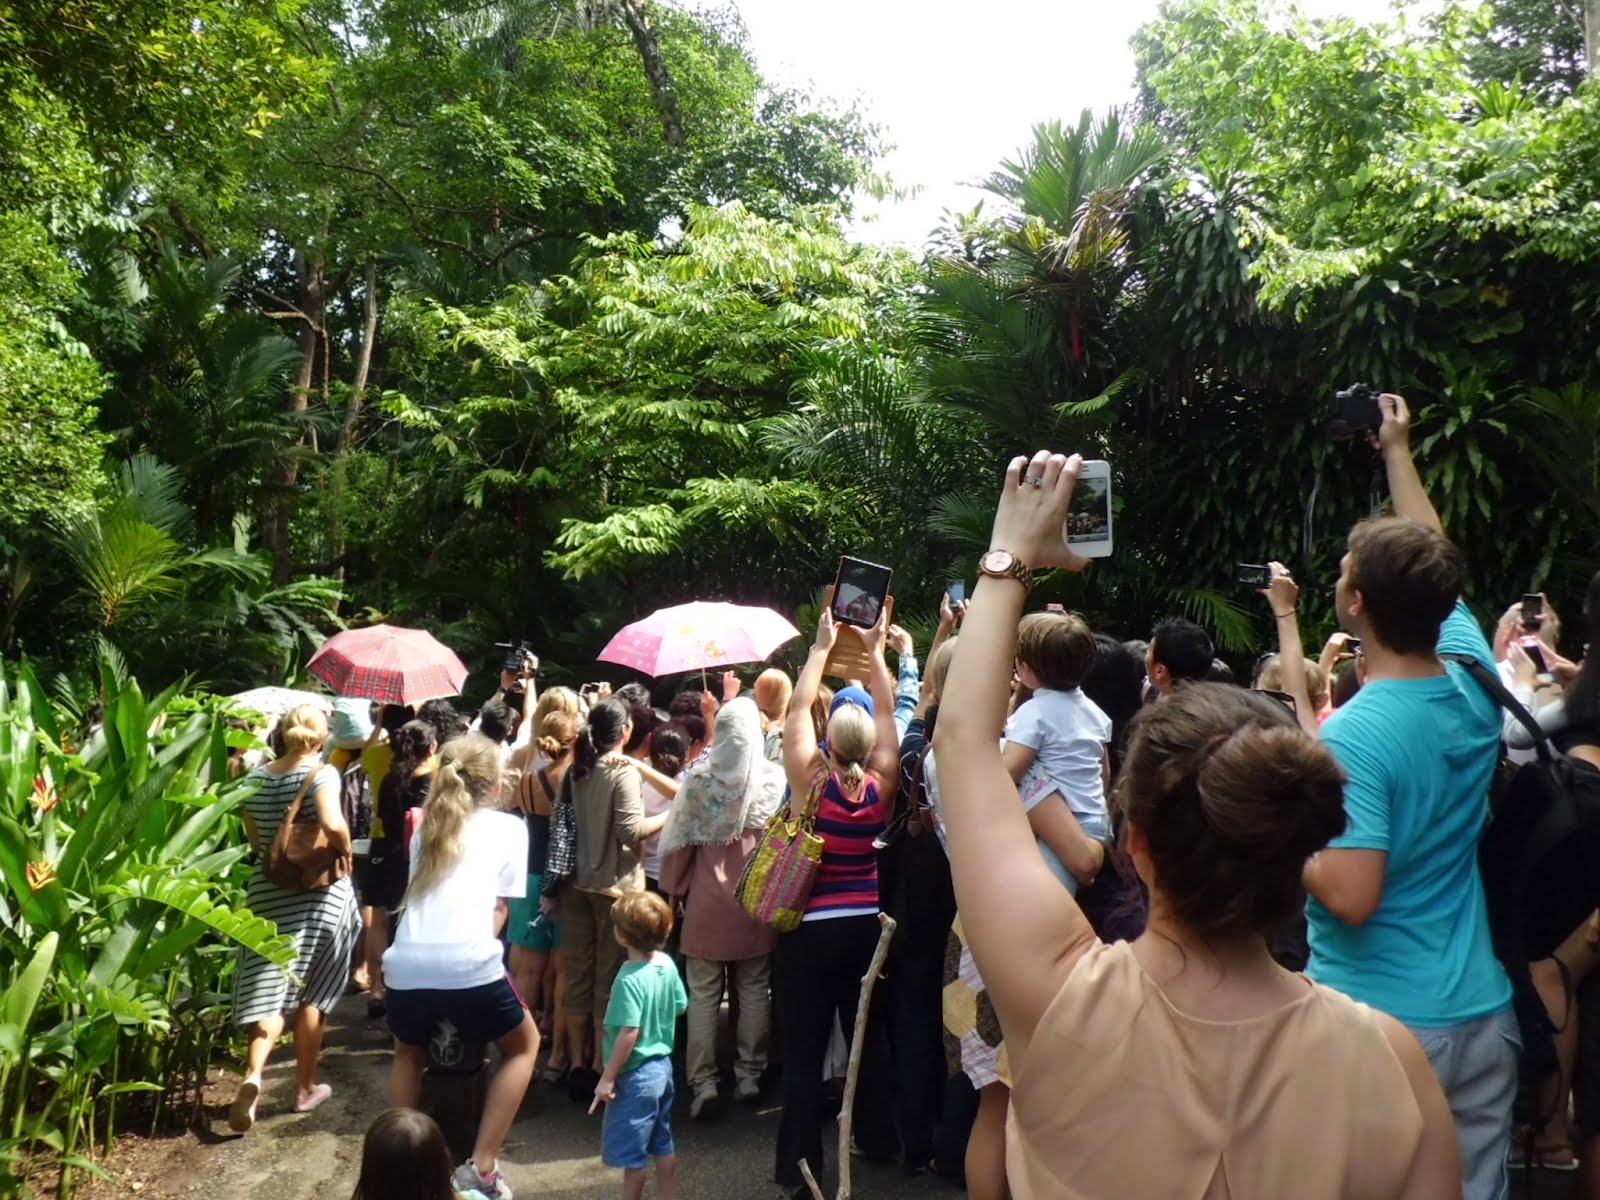 Britain's Prince William and his wife, Catherine (Kate), arriving at the Singapore Botanical Garden @ 3:20pm